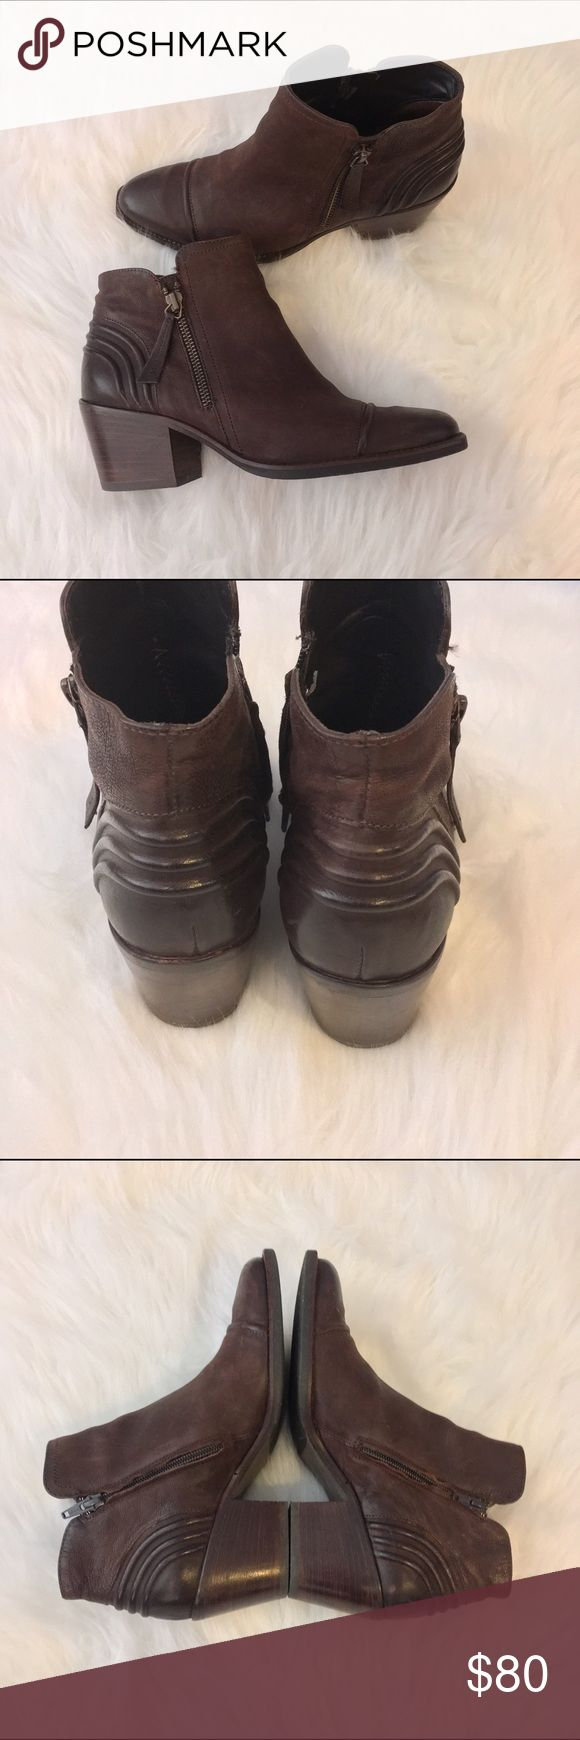 Paul Green Diandra Bootie Paul Green Diandra Bootie. These are beautiful fall shoes. Also very comfortable. I've only worn these twice so they are in excellent condition. They have a 2.5 inch heel. Paul Green Shoes Ankle Boots & Booties